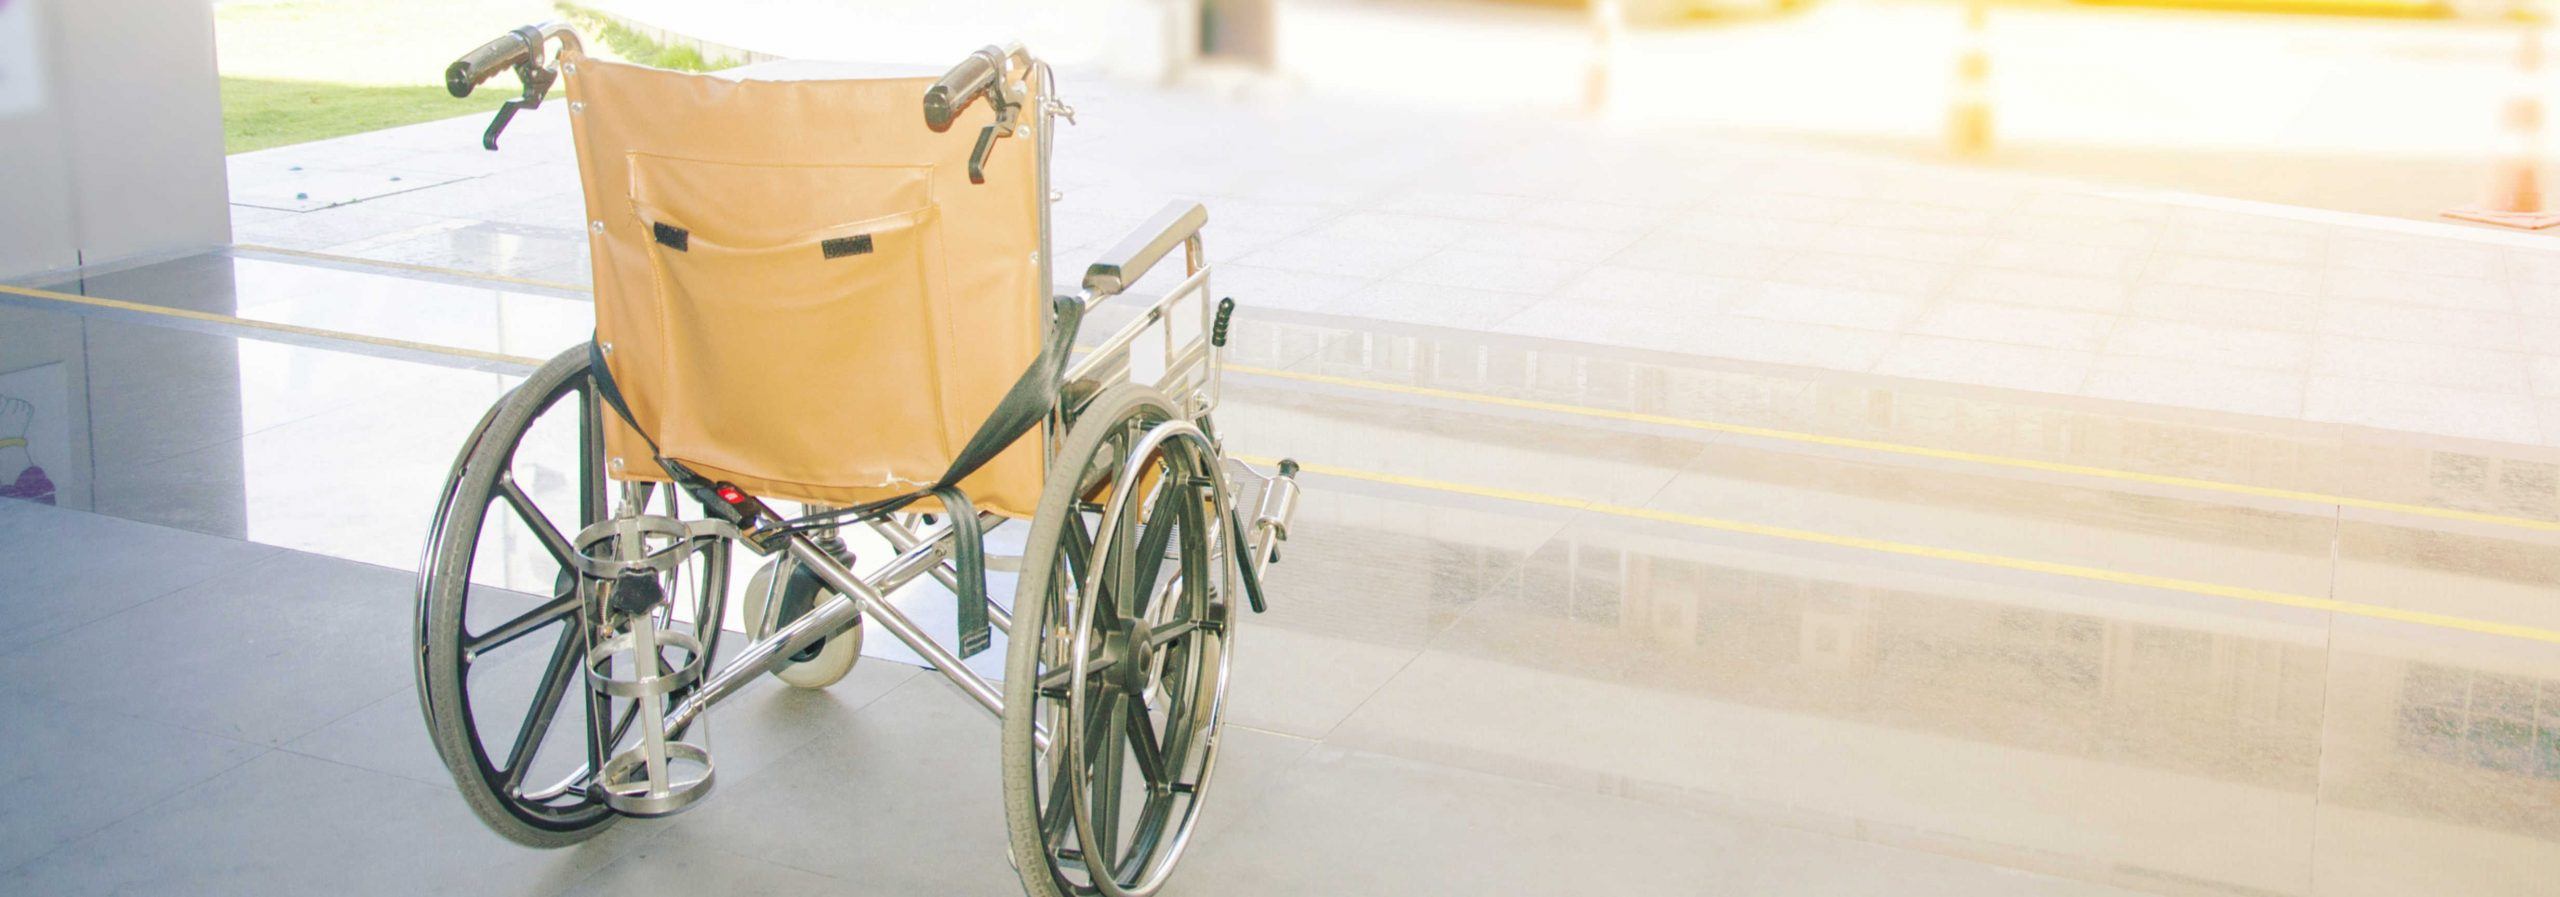 Life care planning personal injury expert